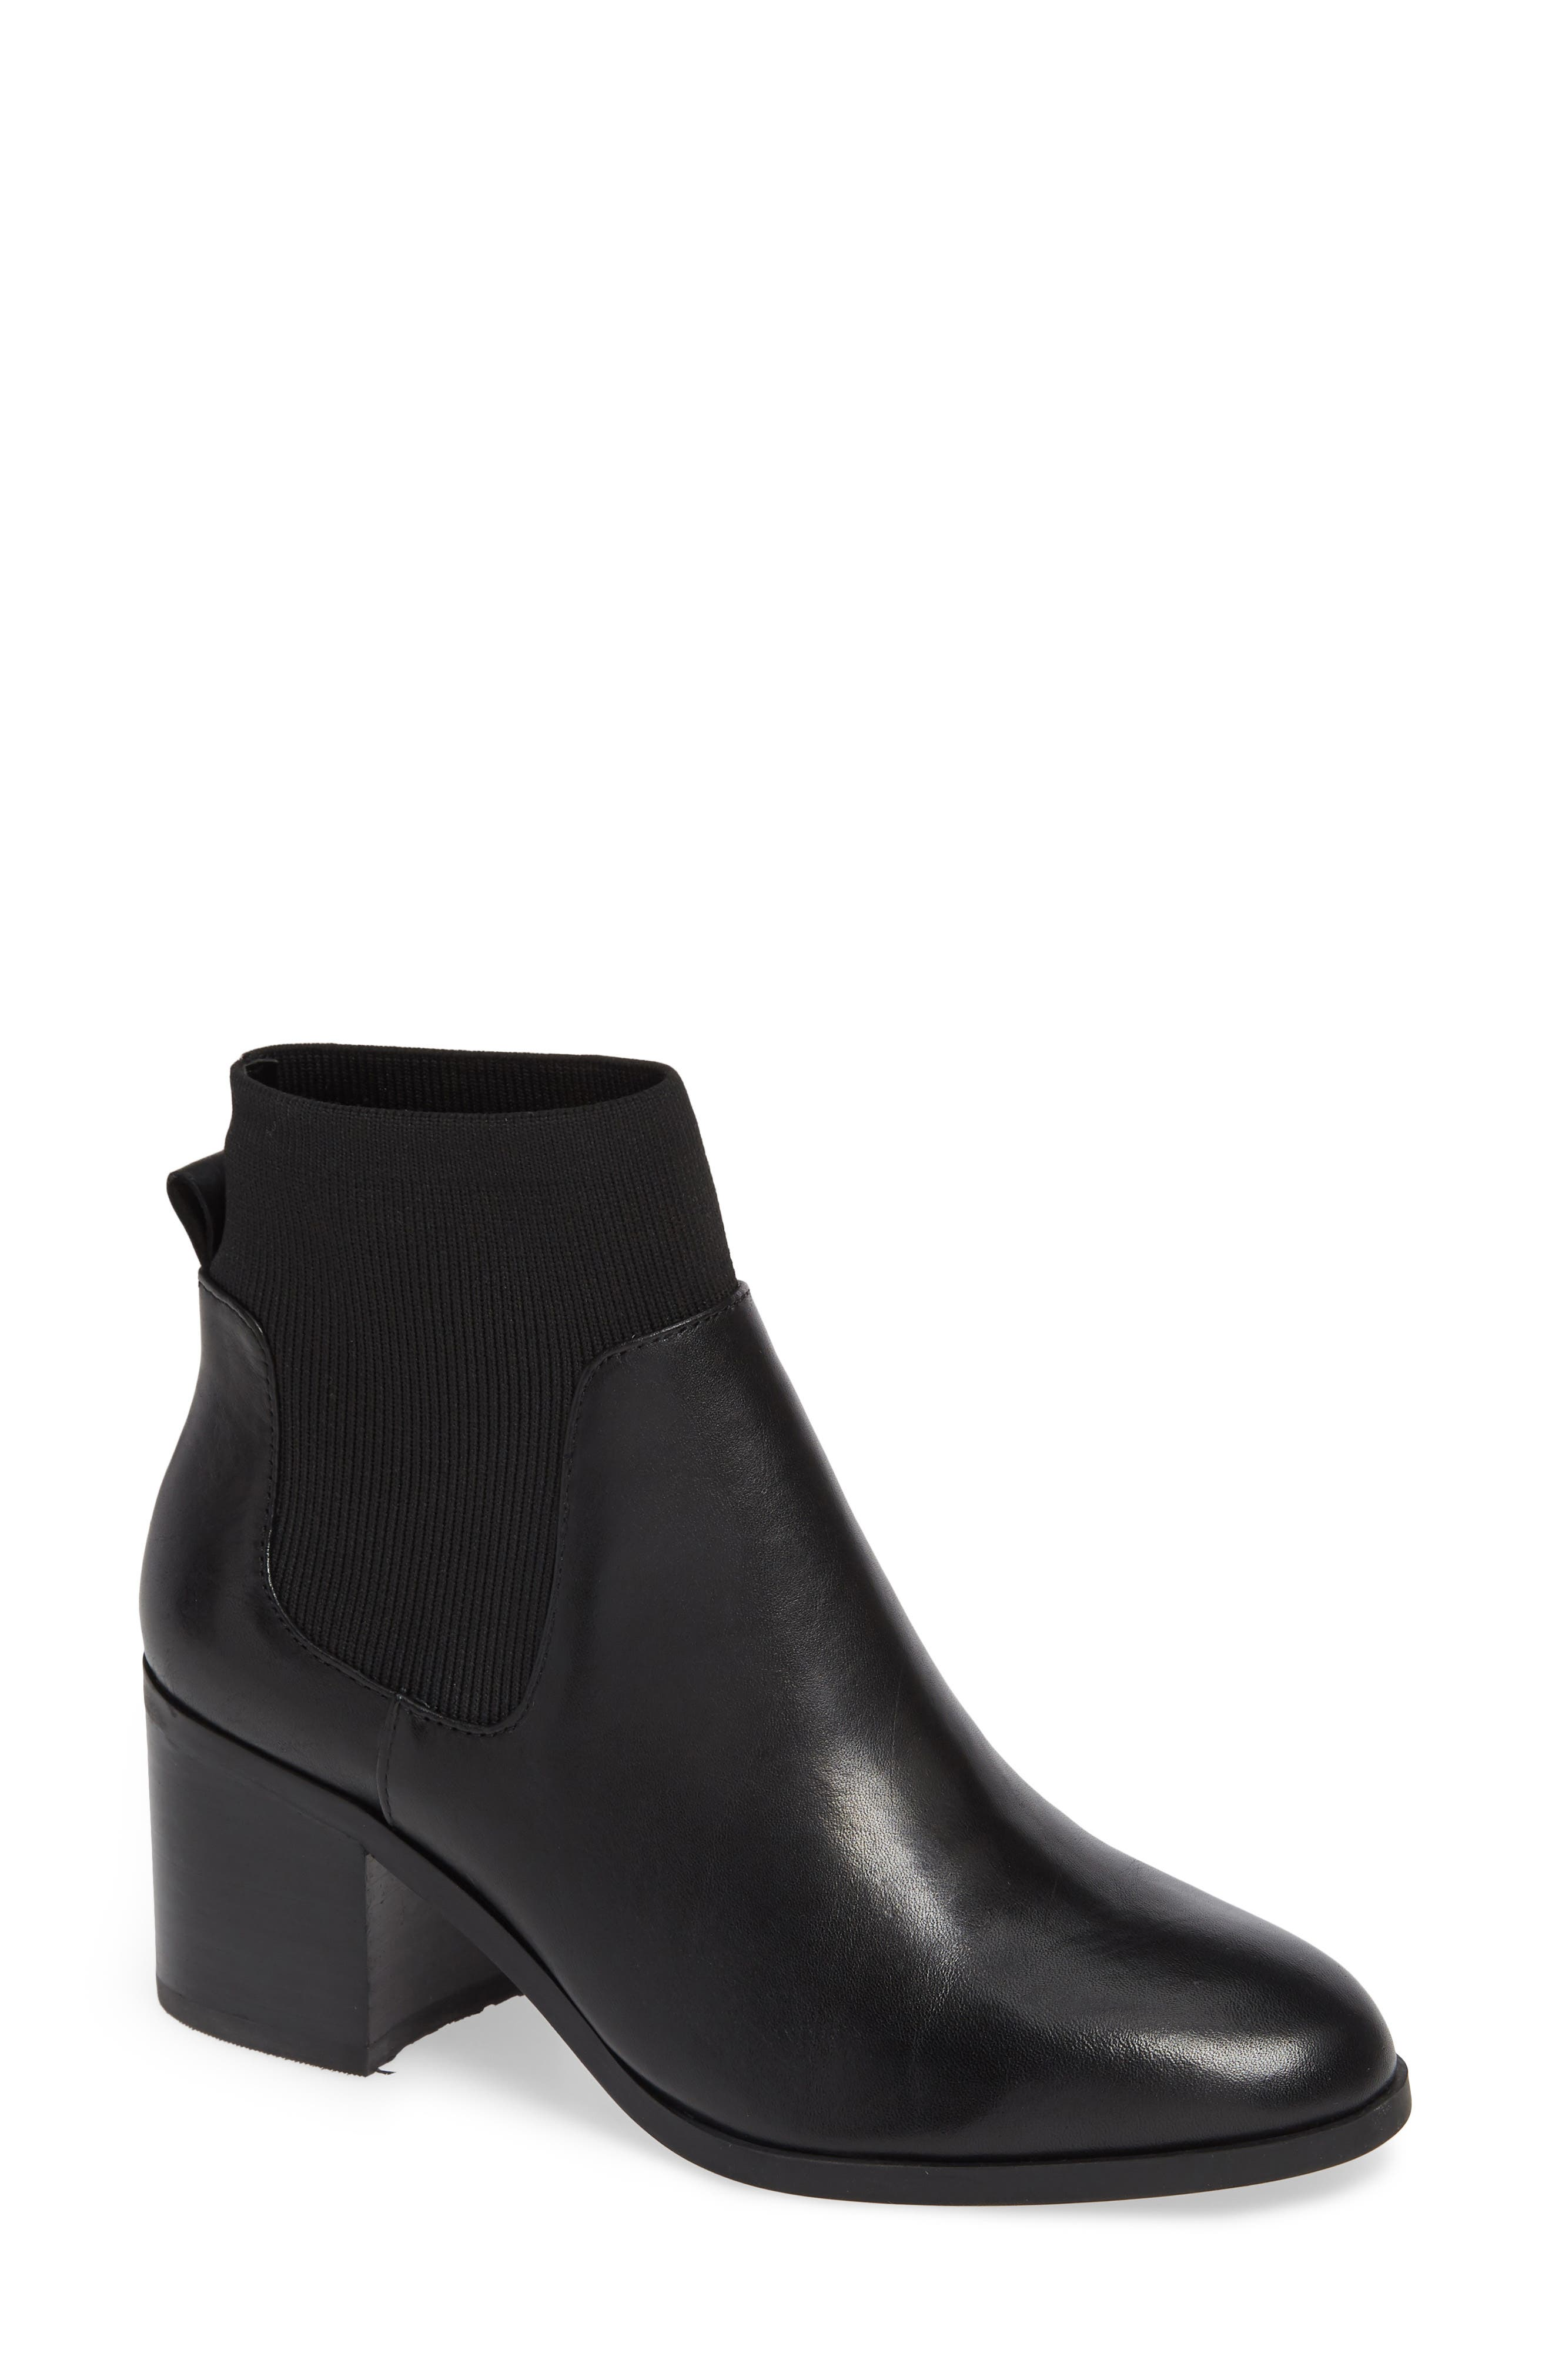 Erika Bootie,                             Main thumbnail 1, color,                             BLACK LEATHER